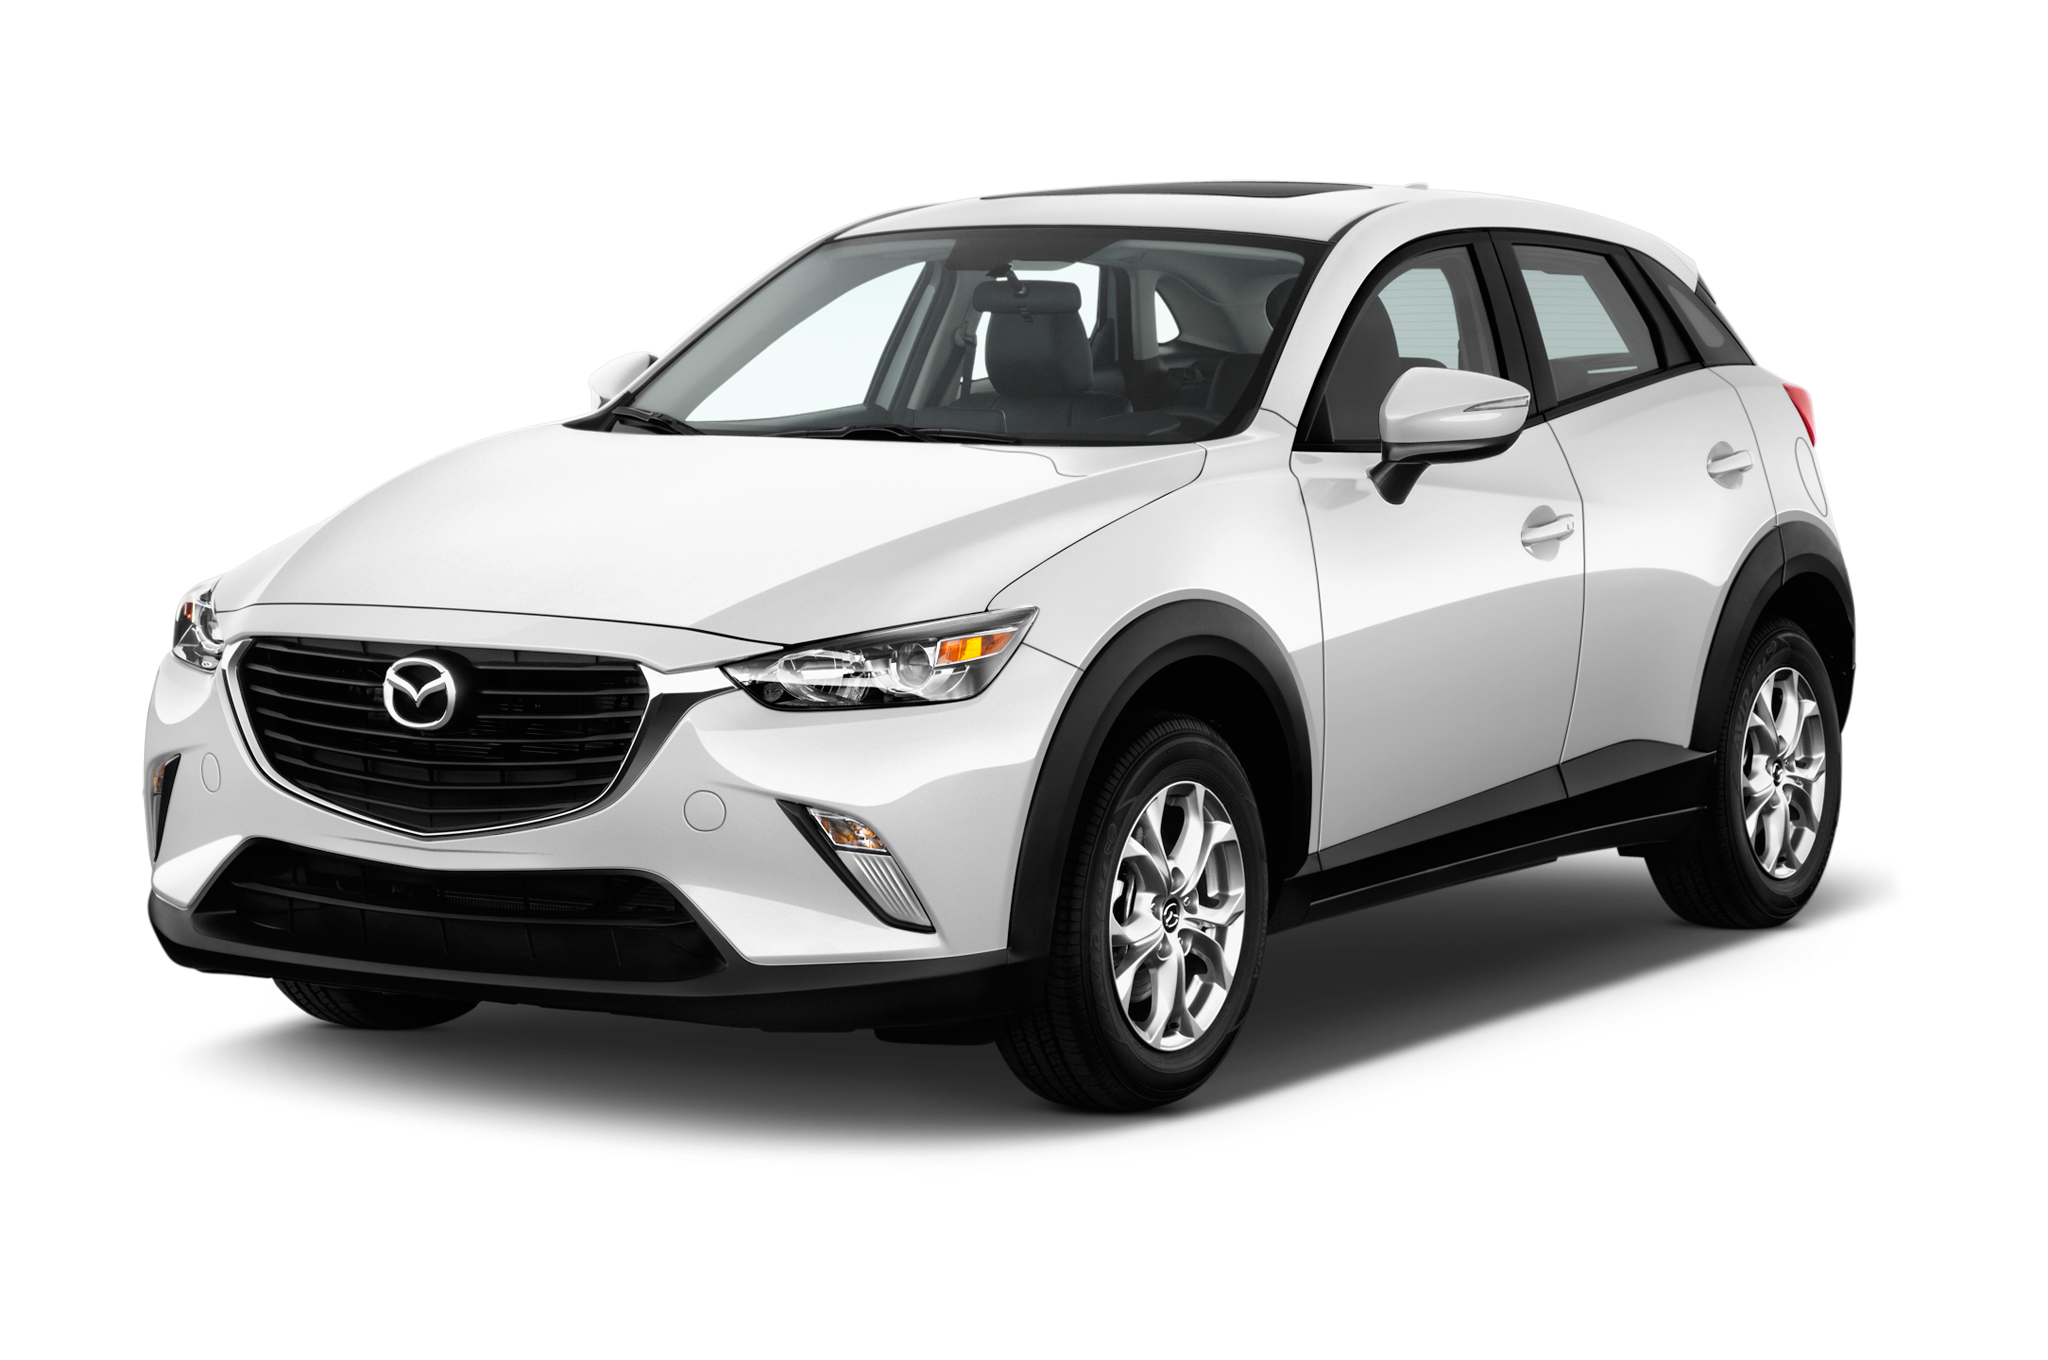 2016 mazda cx-3 reviews and rating | motortrend